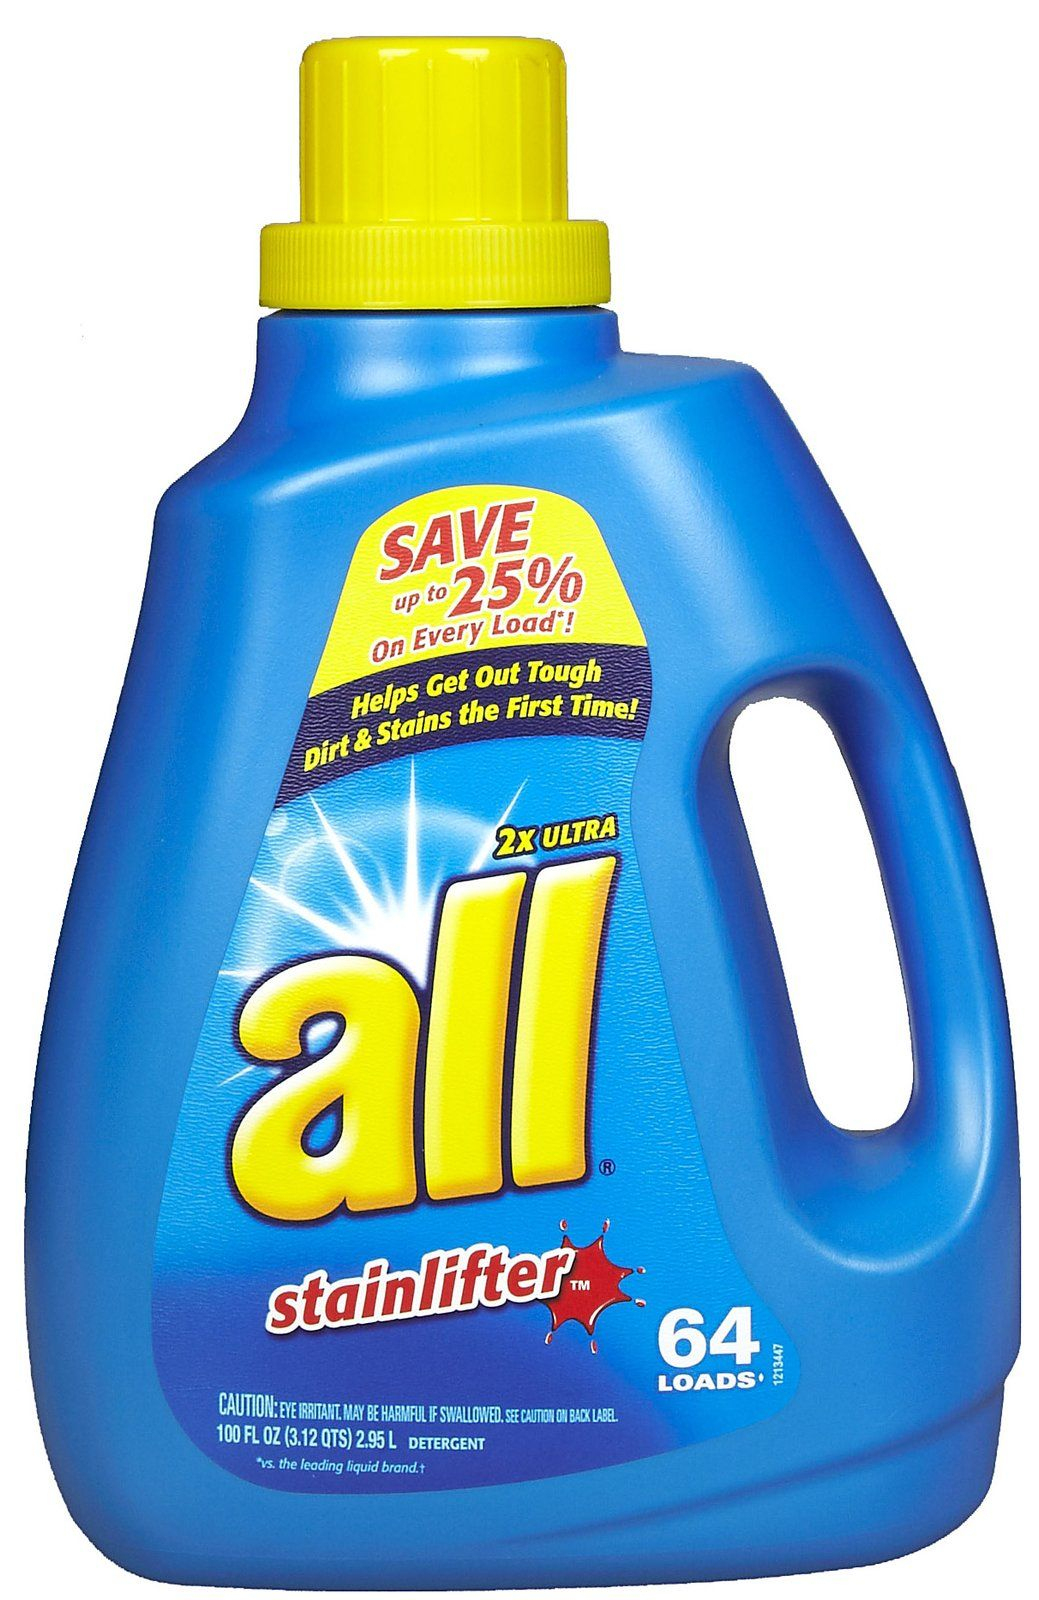 $1.00/1 All Laundry Detergent Coupon! | Coupons, Free Samples - Free All Detergent Printable Coupons